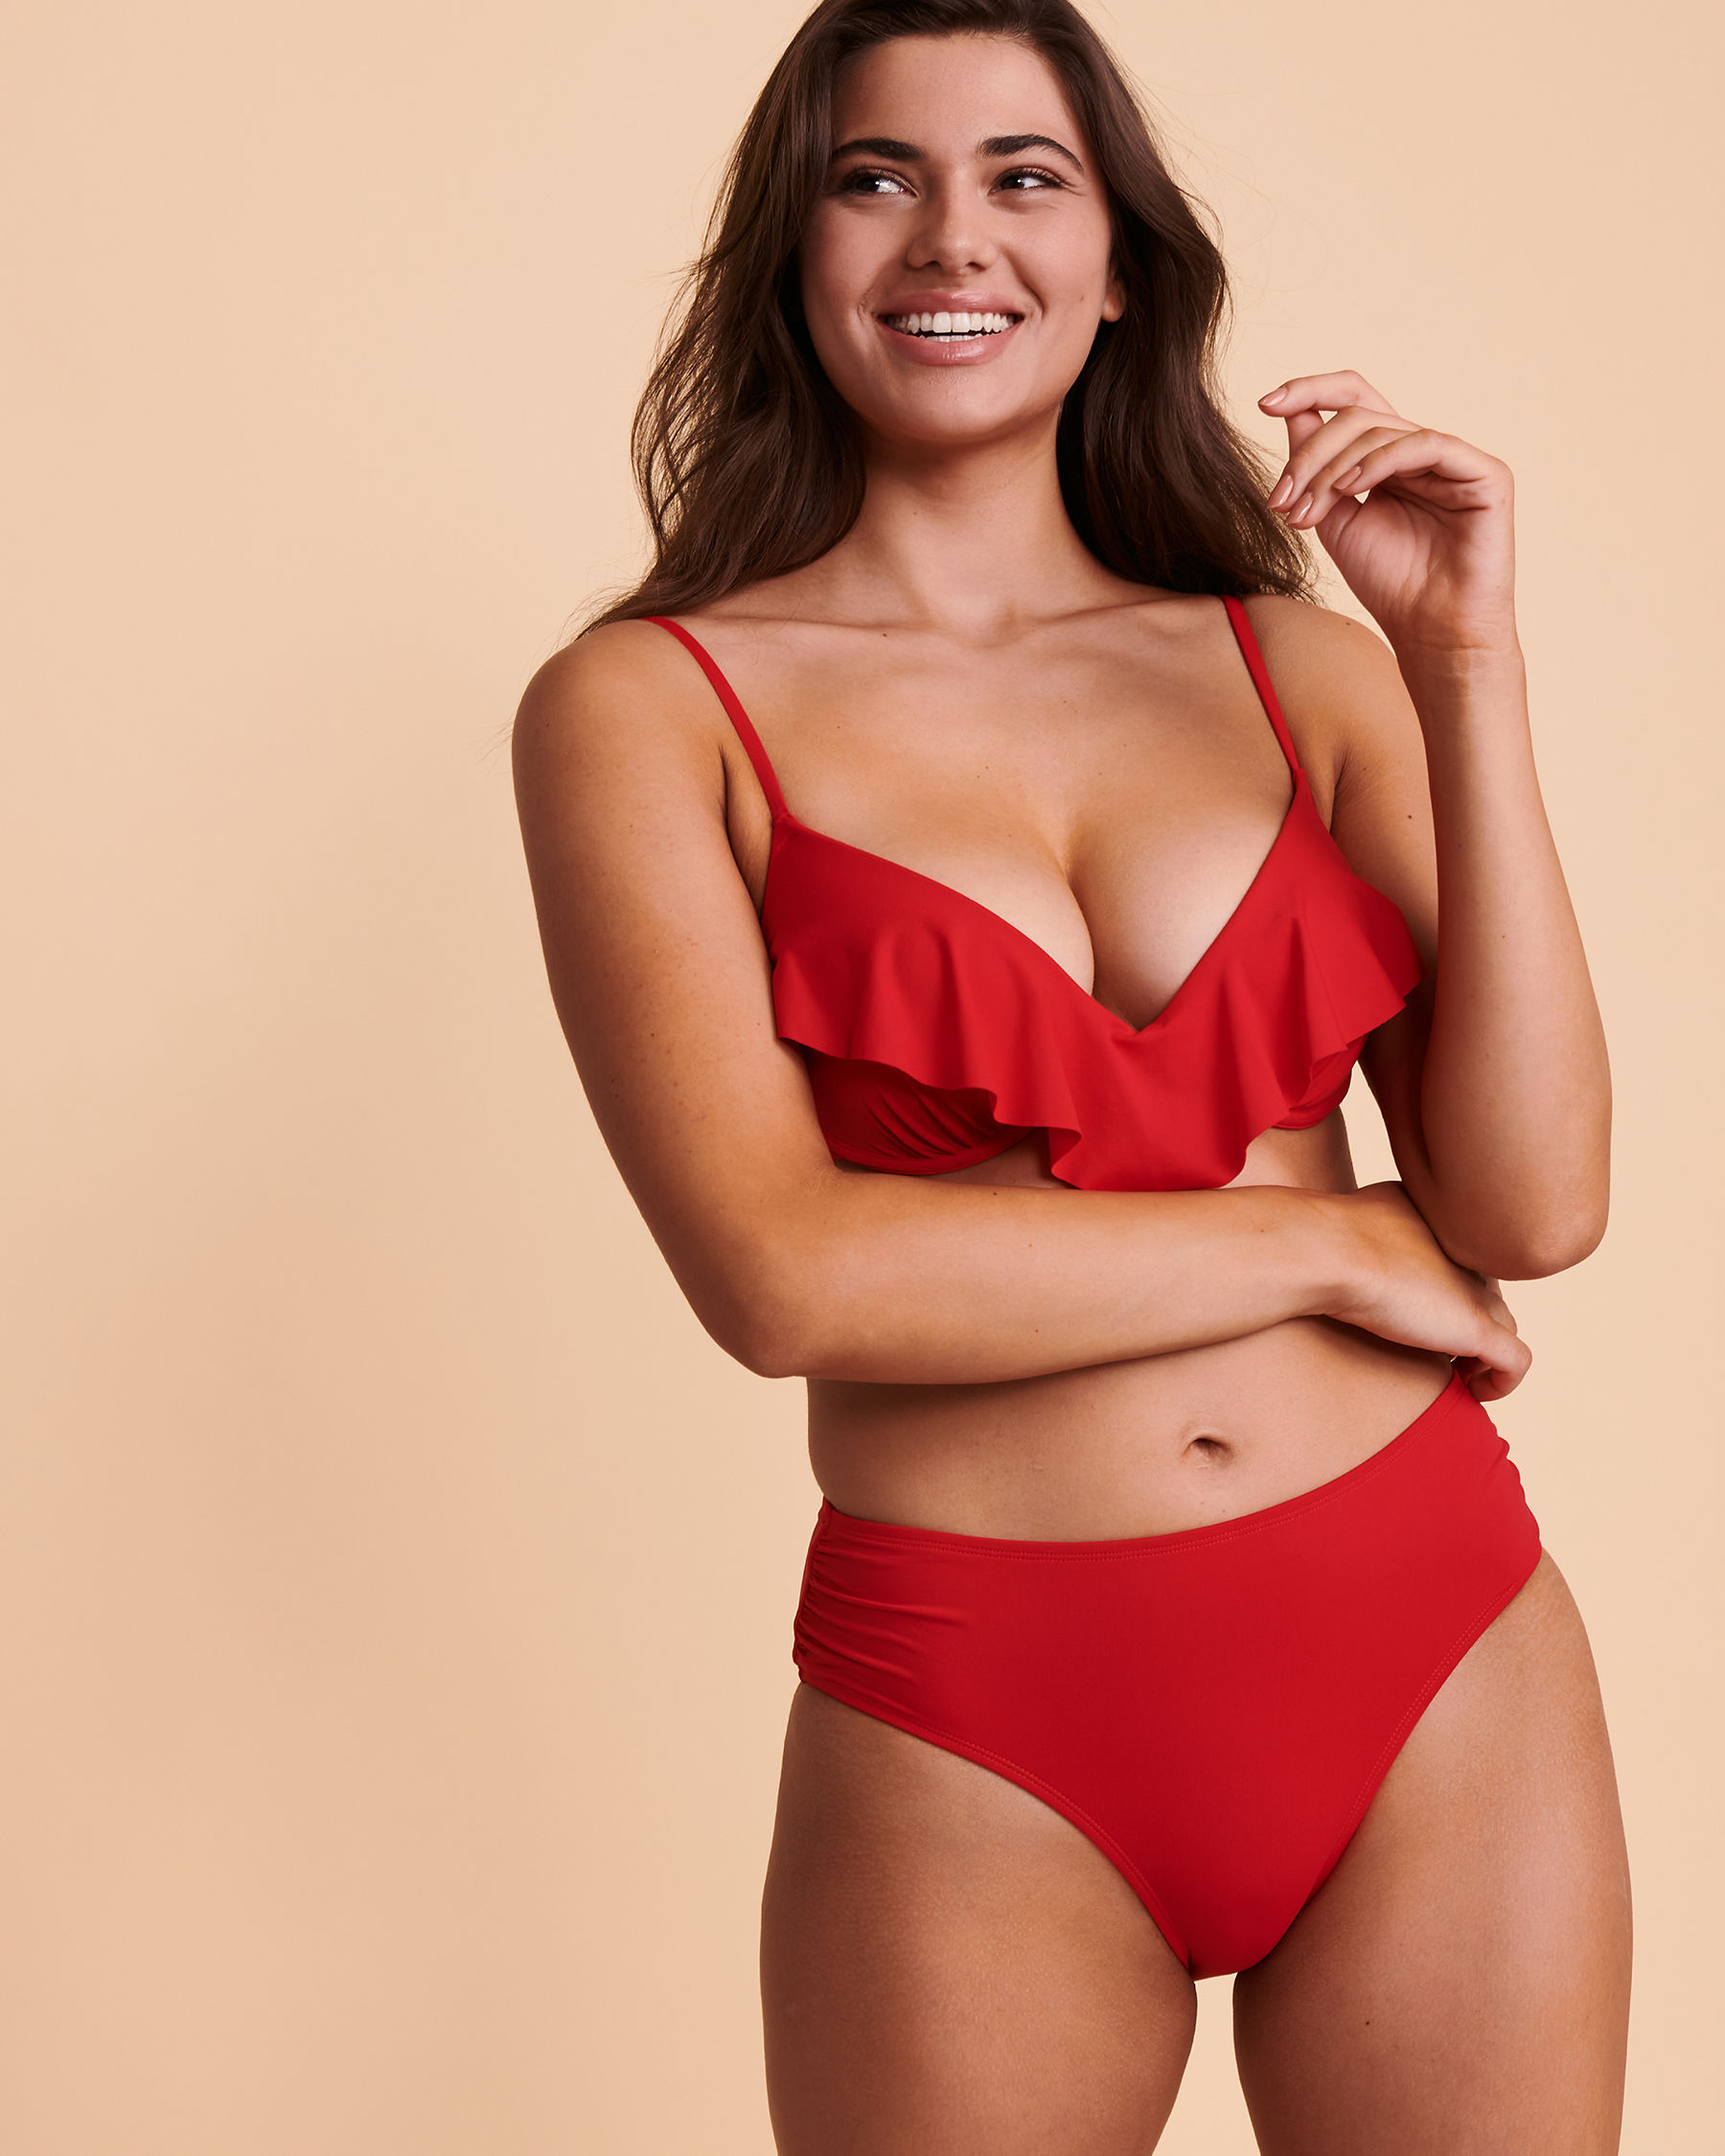 TURQUOISE COUTURE SOLID High Waist Bikini Bottom Red 01300008 - View3